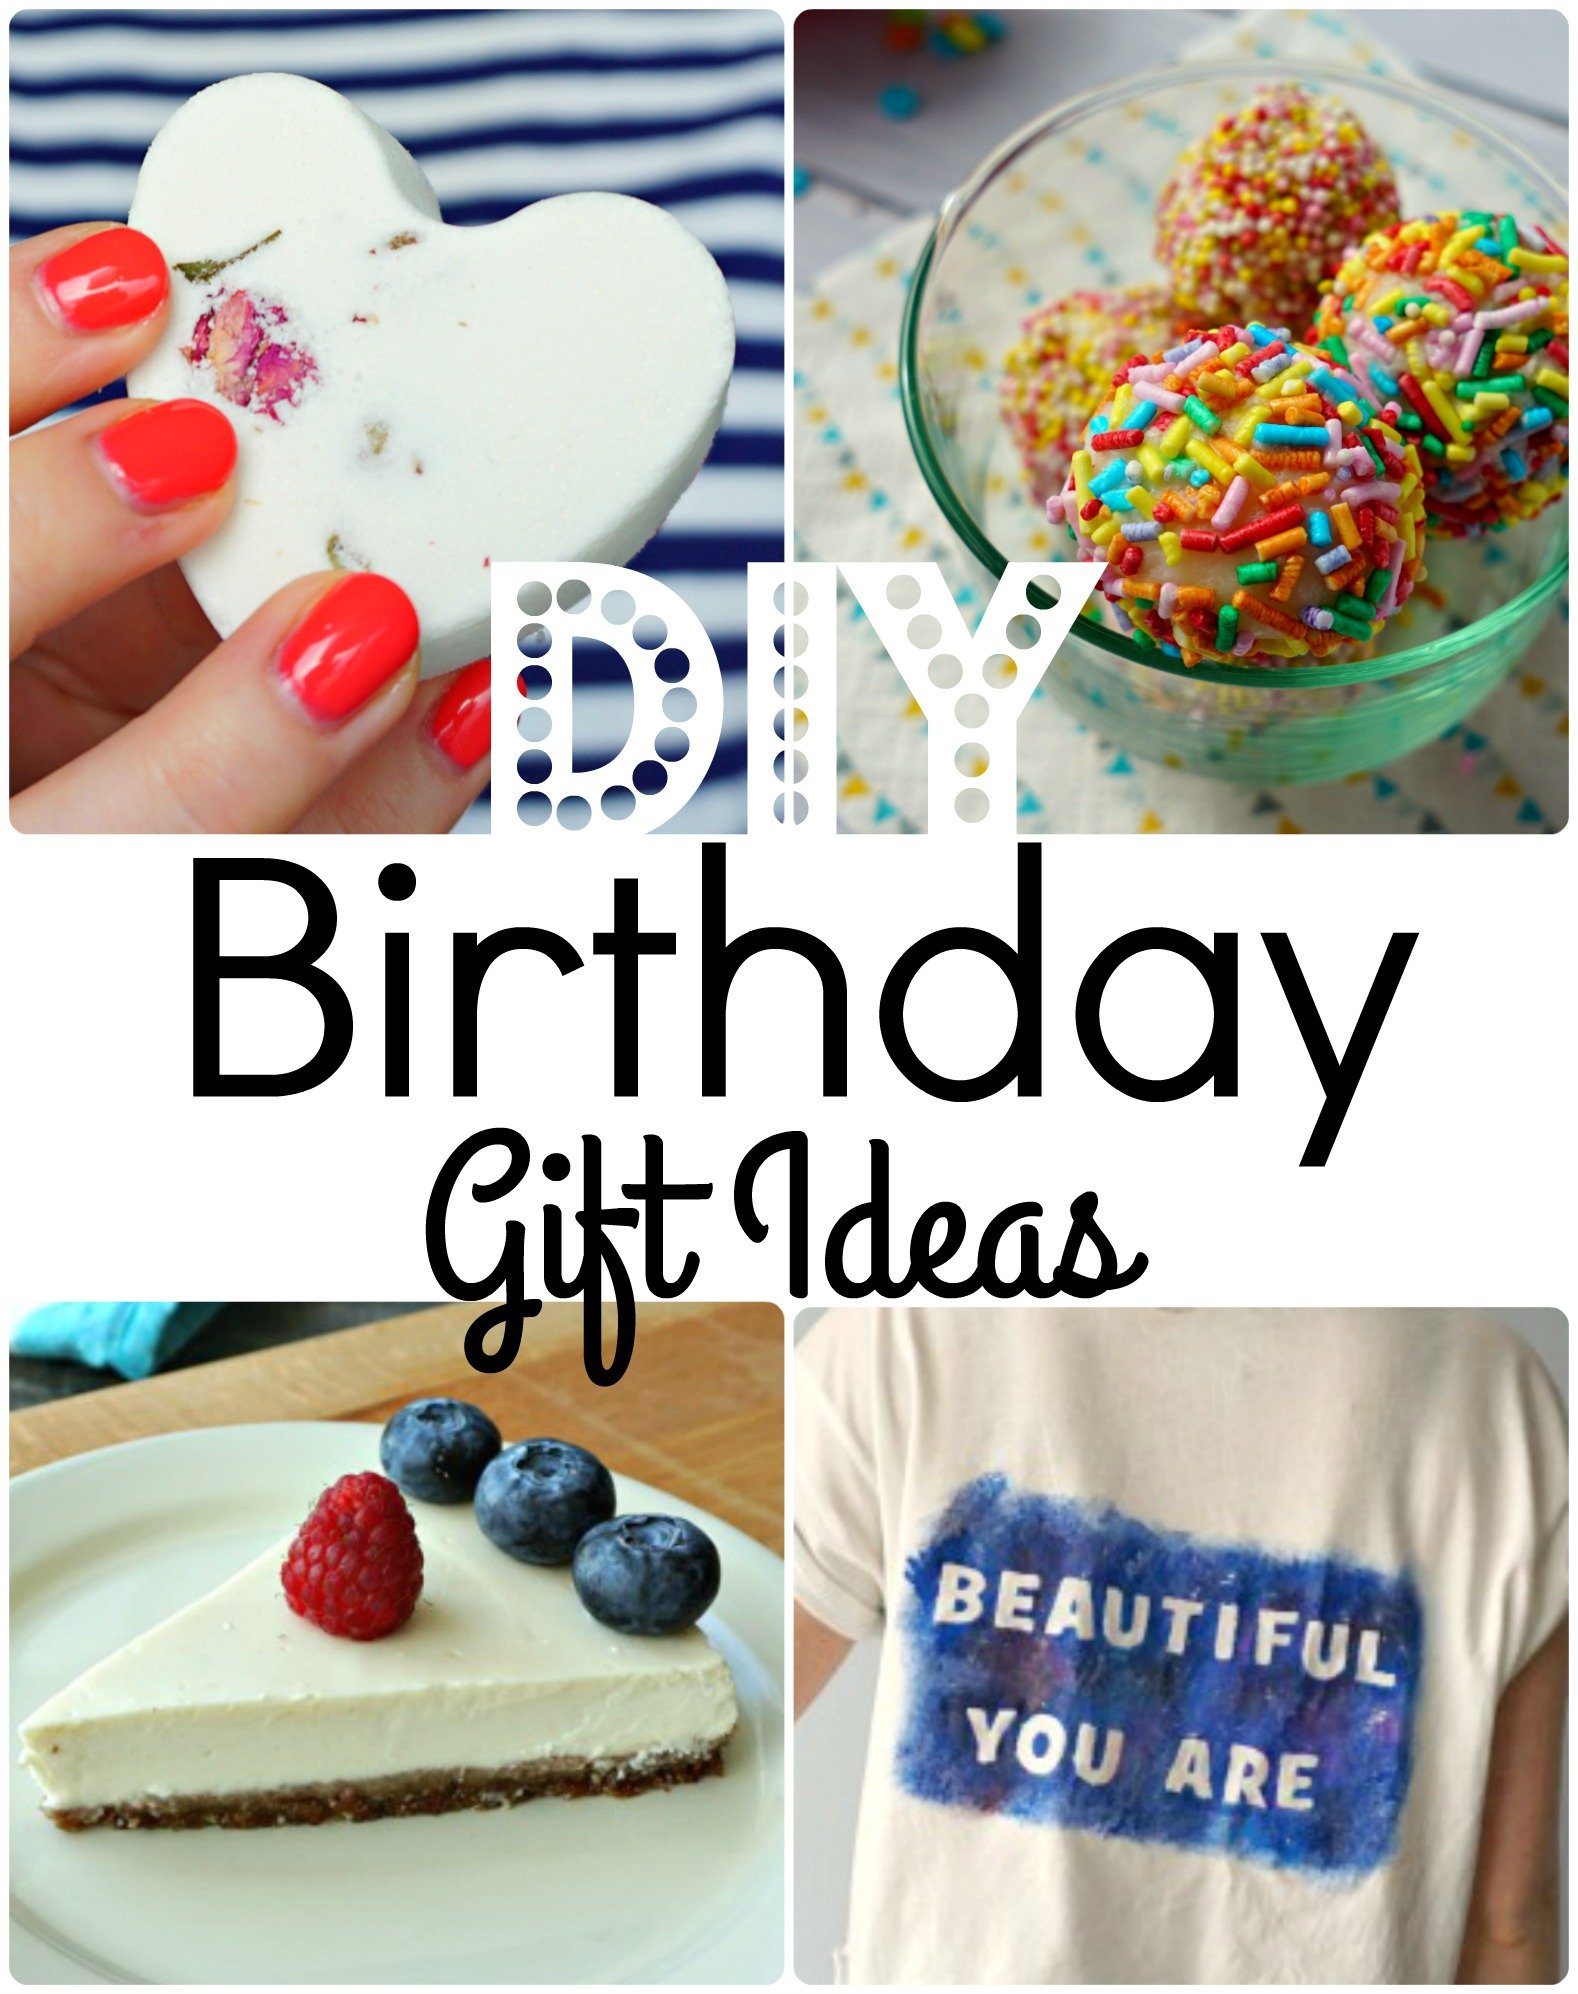 7 Easy DIY Birthday Gift Ideas Anyone Would Enjoy How To Tutorials By The Makeup